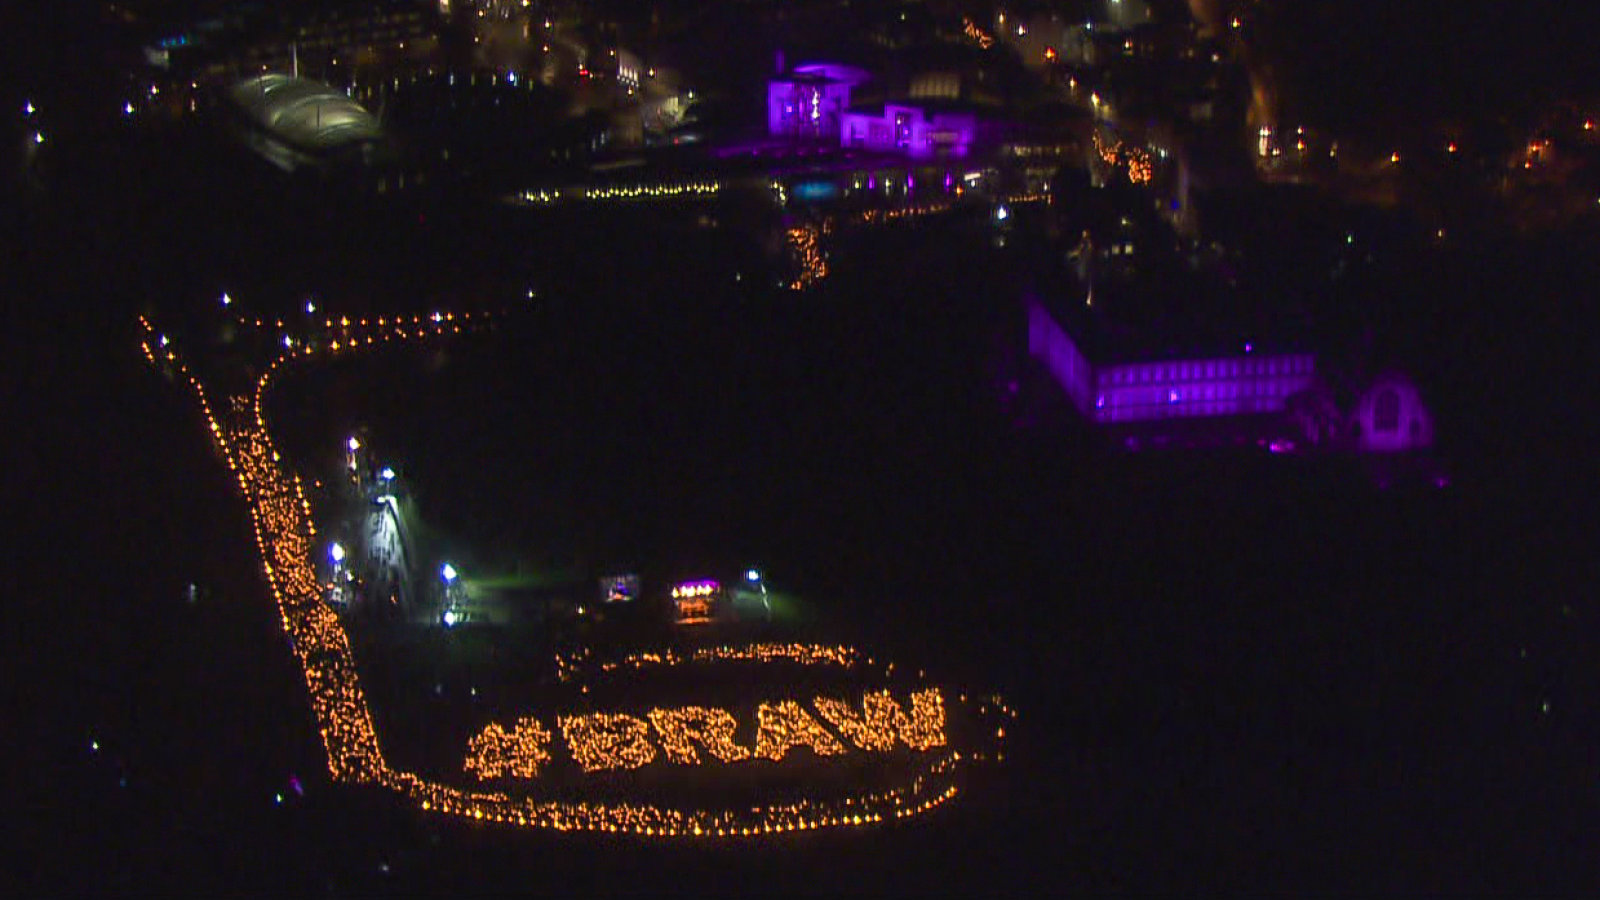 Helicopter shot of Scotword BRAW by Mike Penman